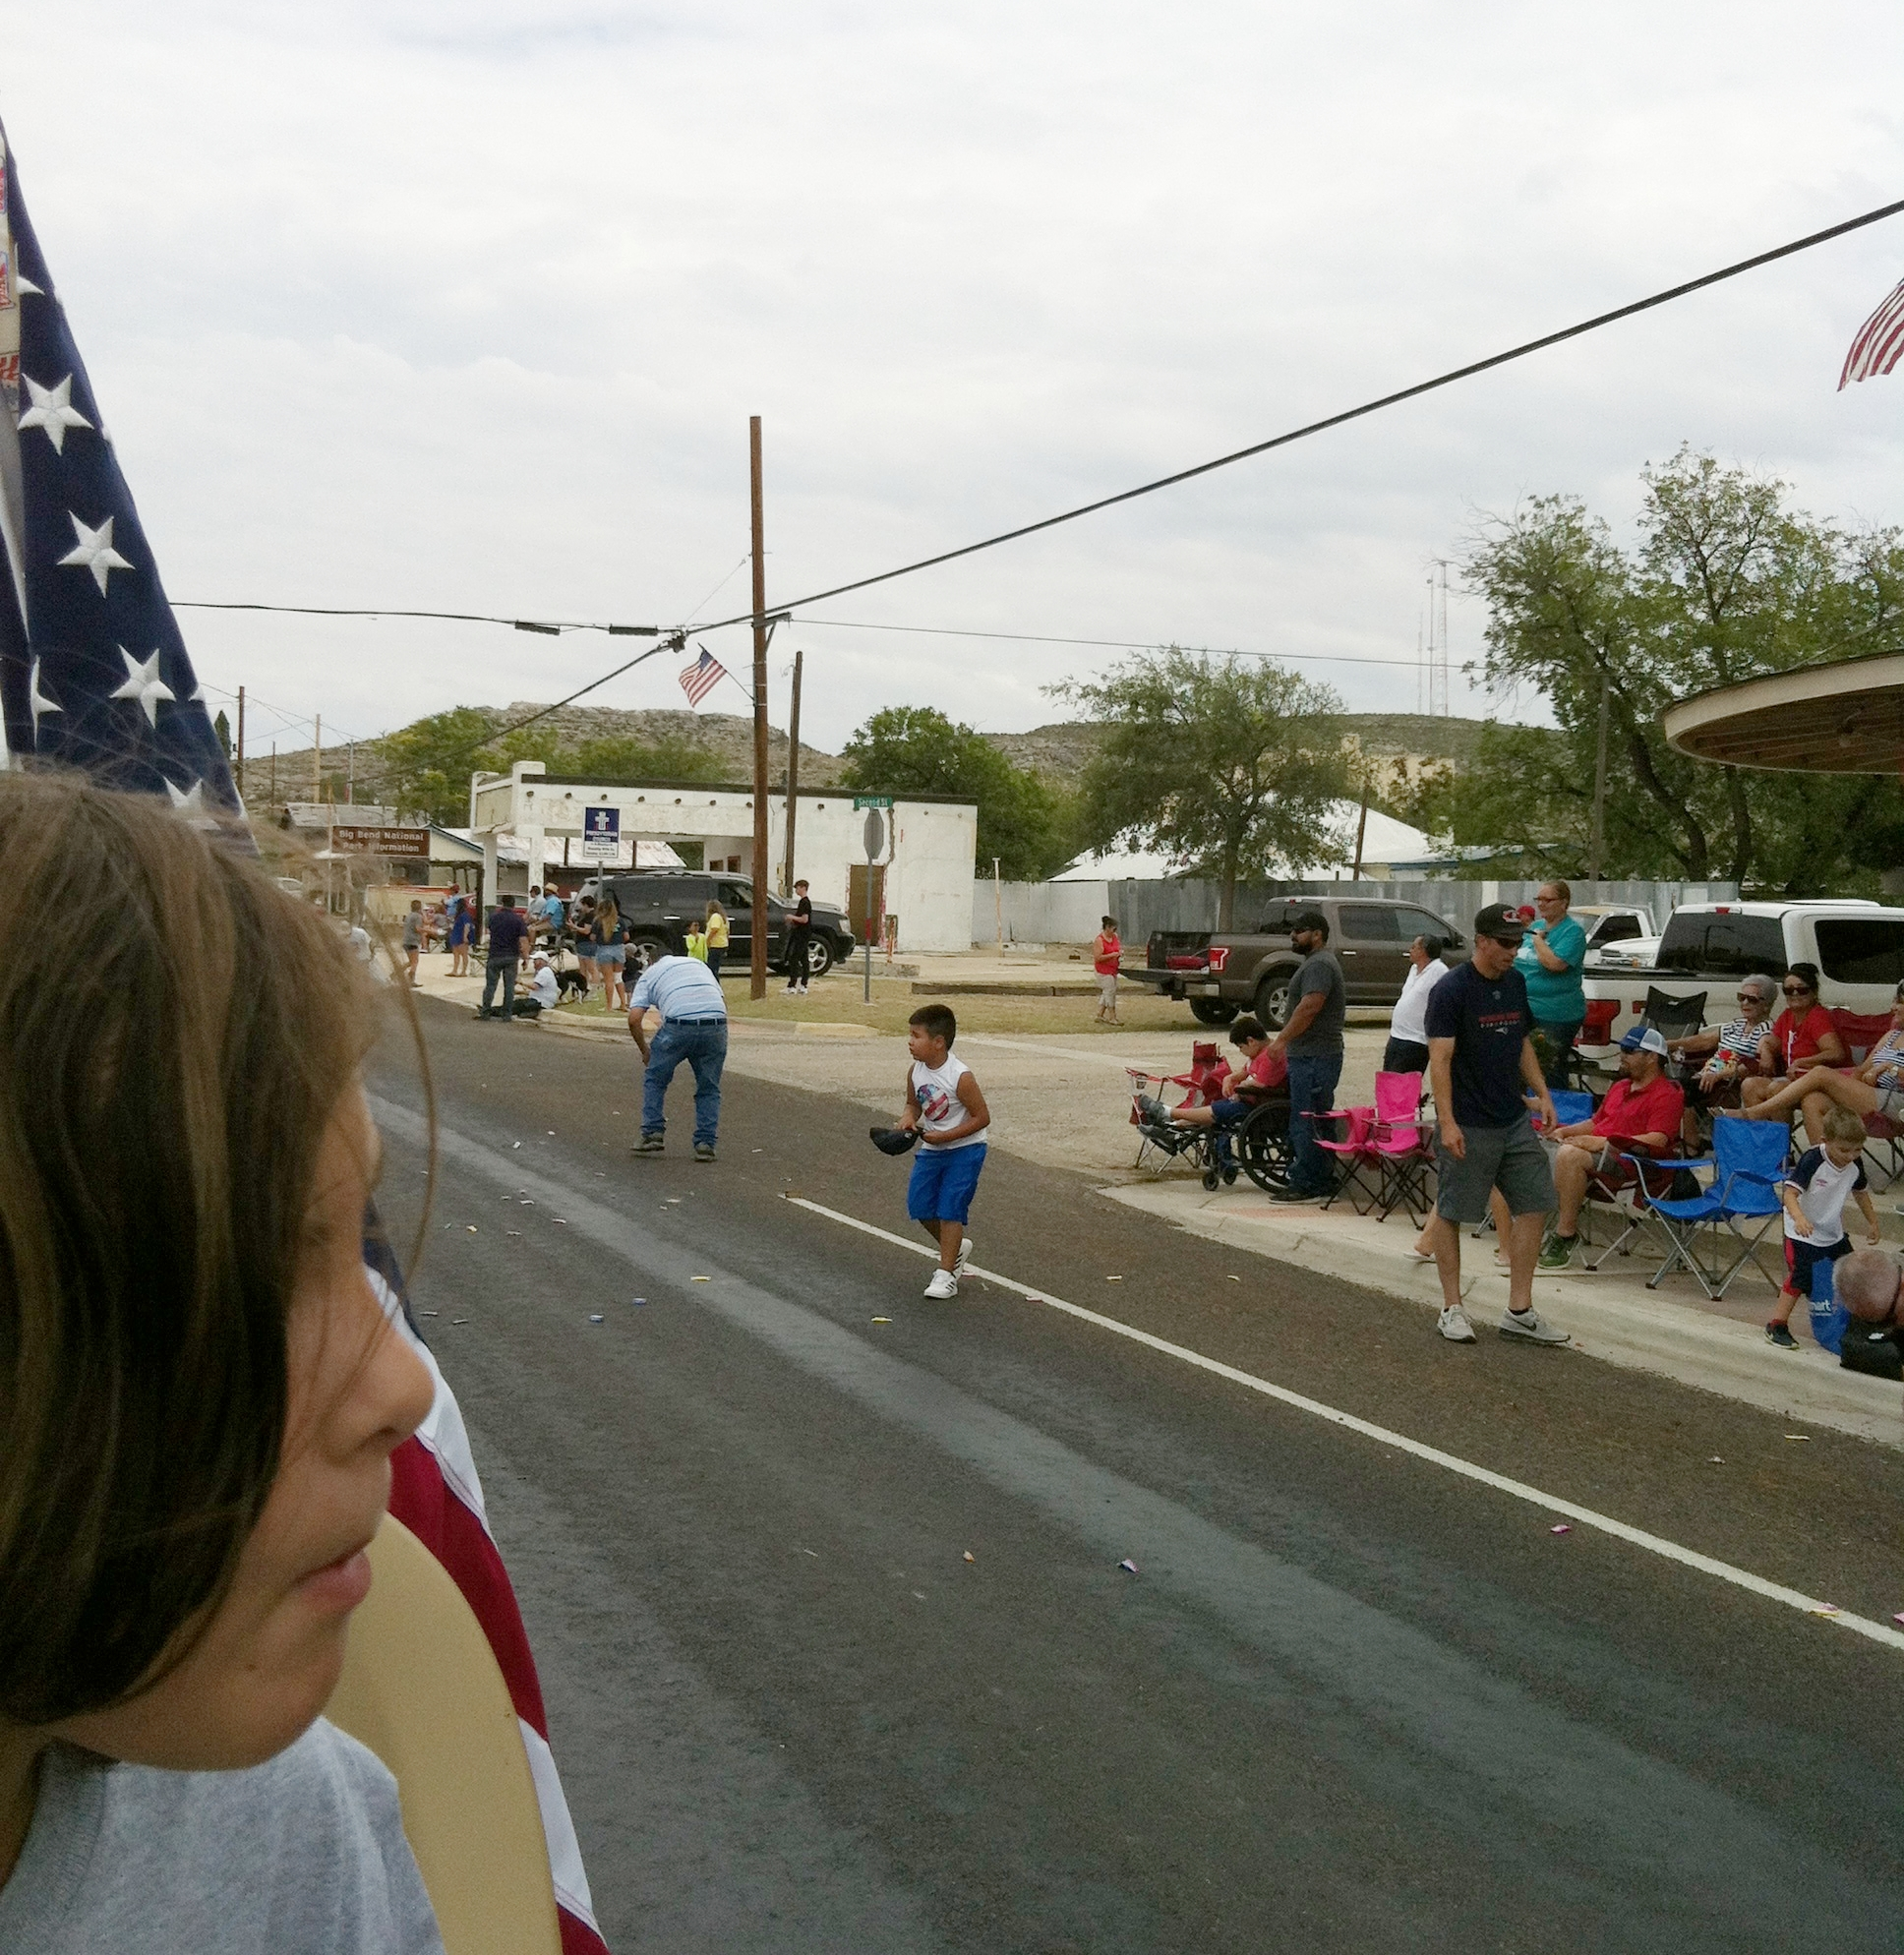 Children getting candy from the floats